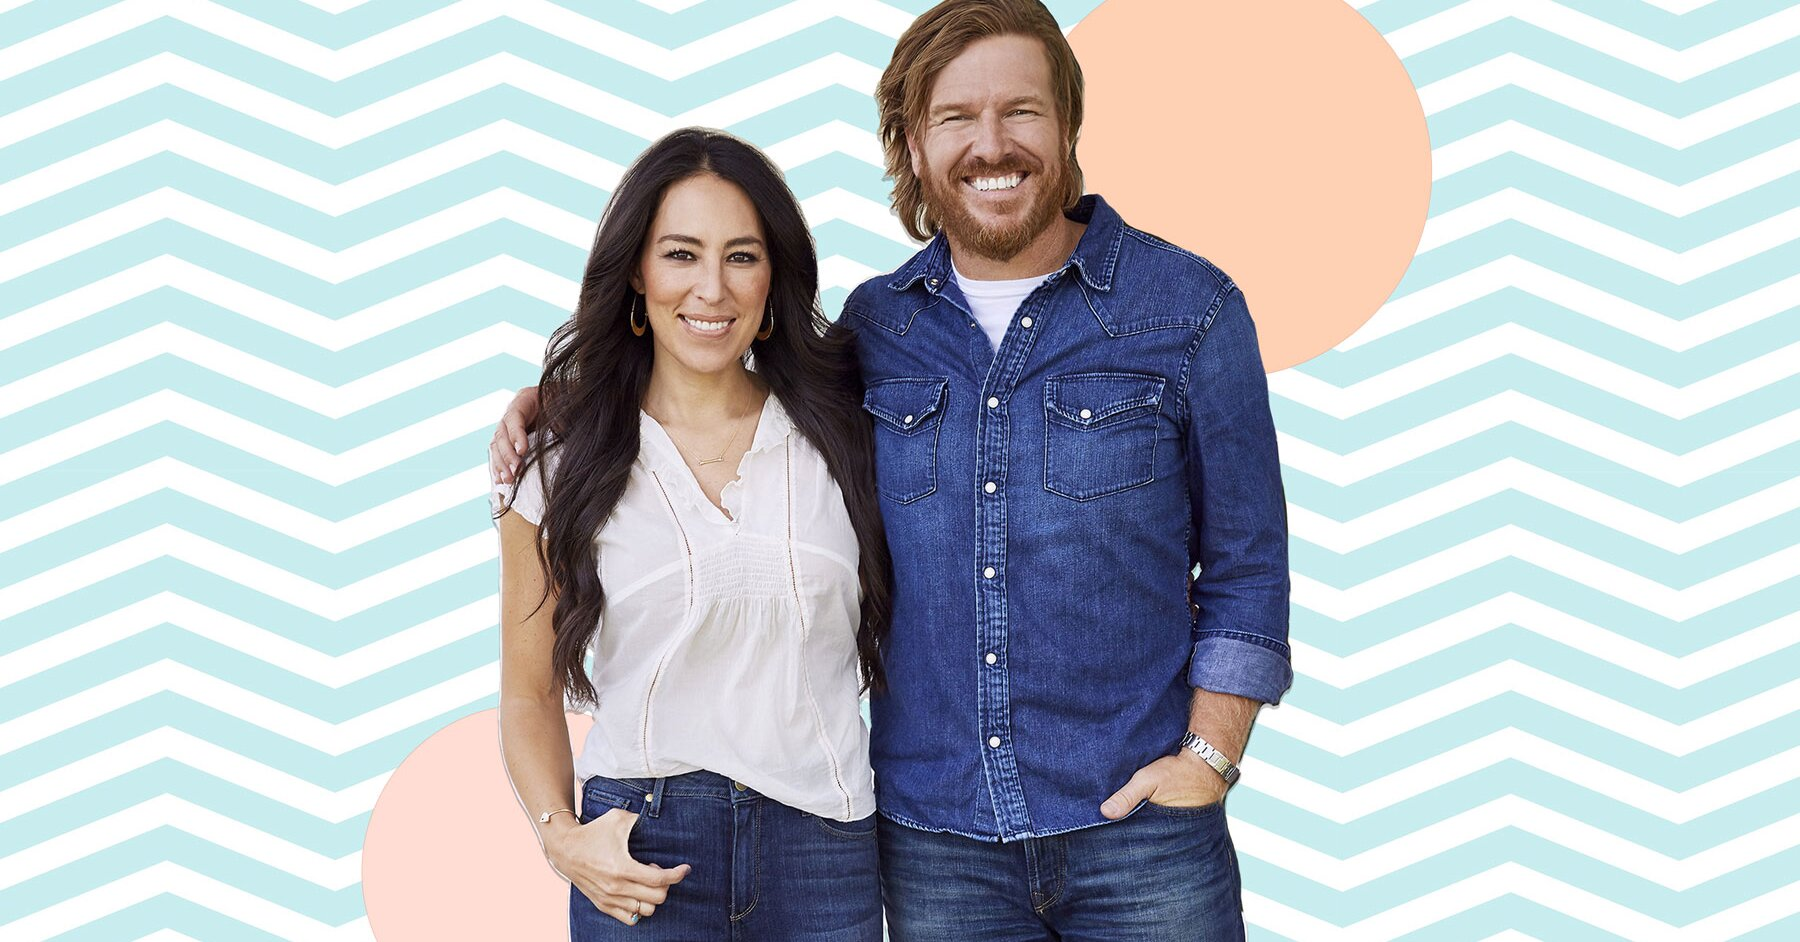 How Old Are Joanna Gaines And Chip Gaines Real Simple,Joker Hd Wallpaper 4k Black And White